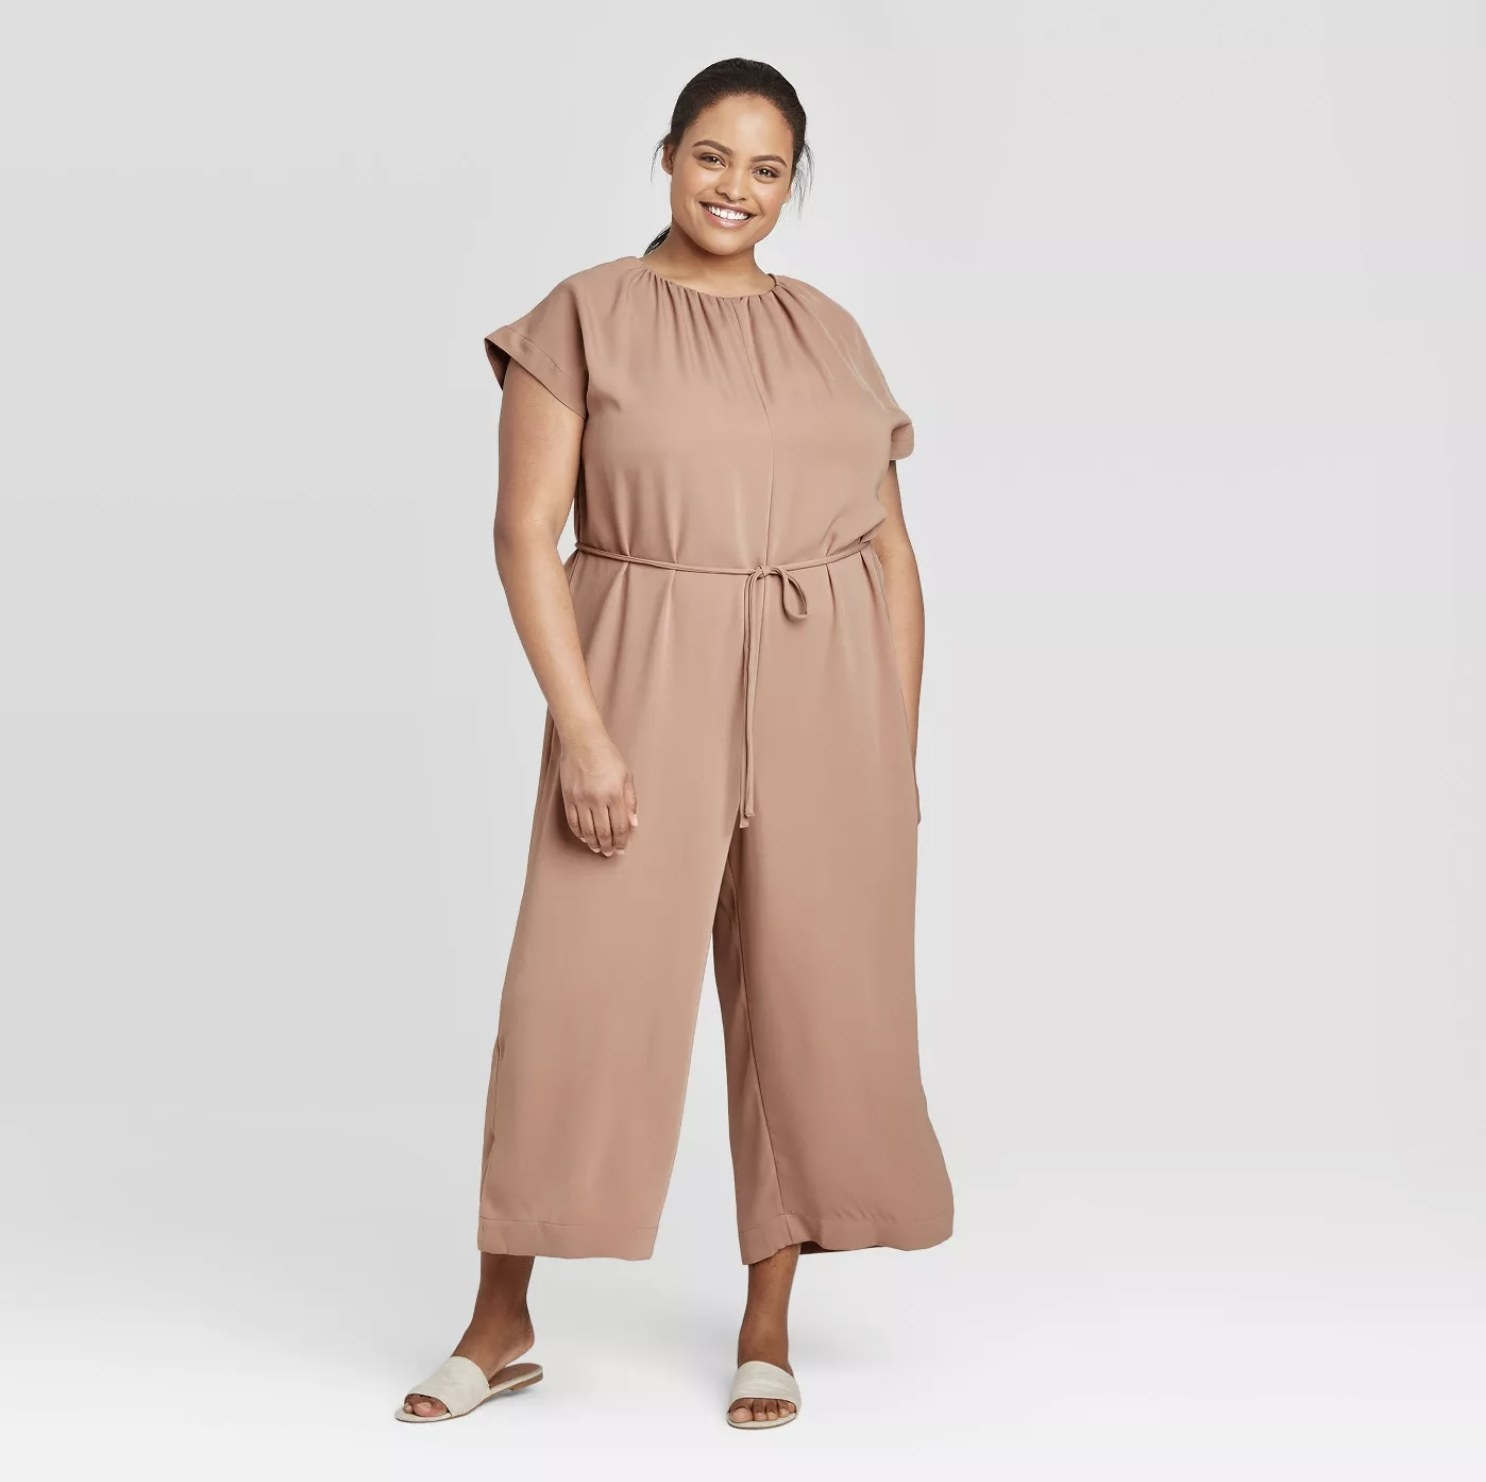 Model is wearing a mauve short sleeve ankle length jumpsuit with gathered waist details and grey slides